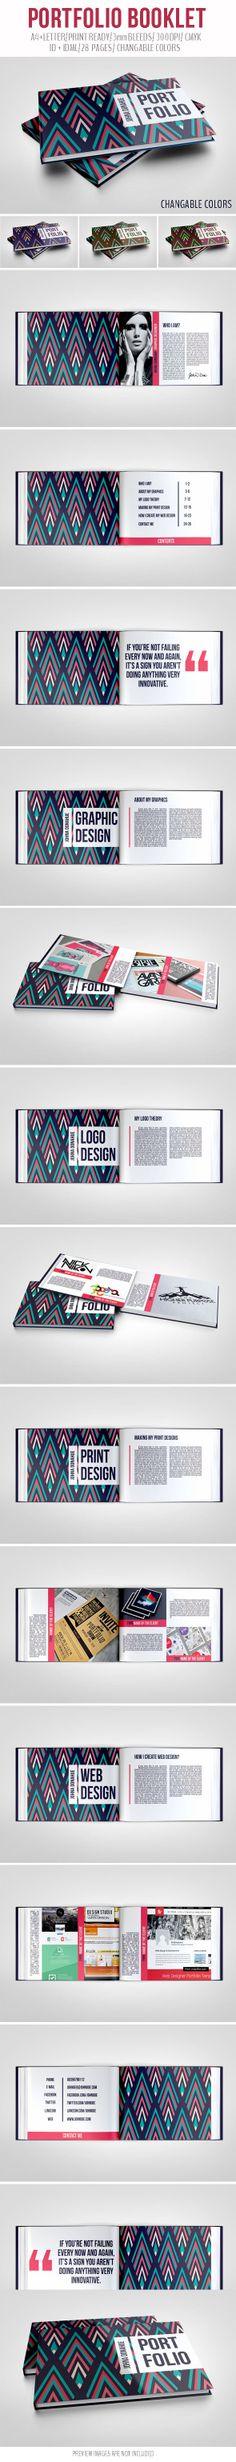 Portfolio Booklet by crew55design, via Behance